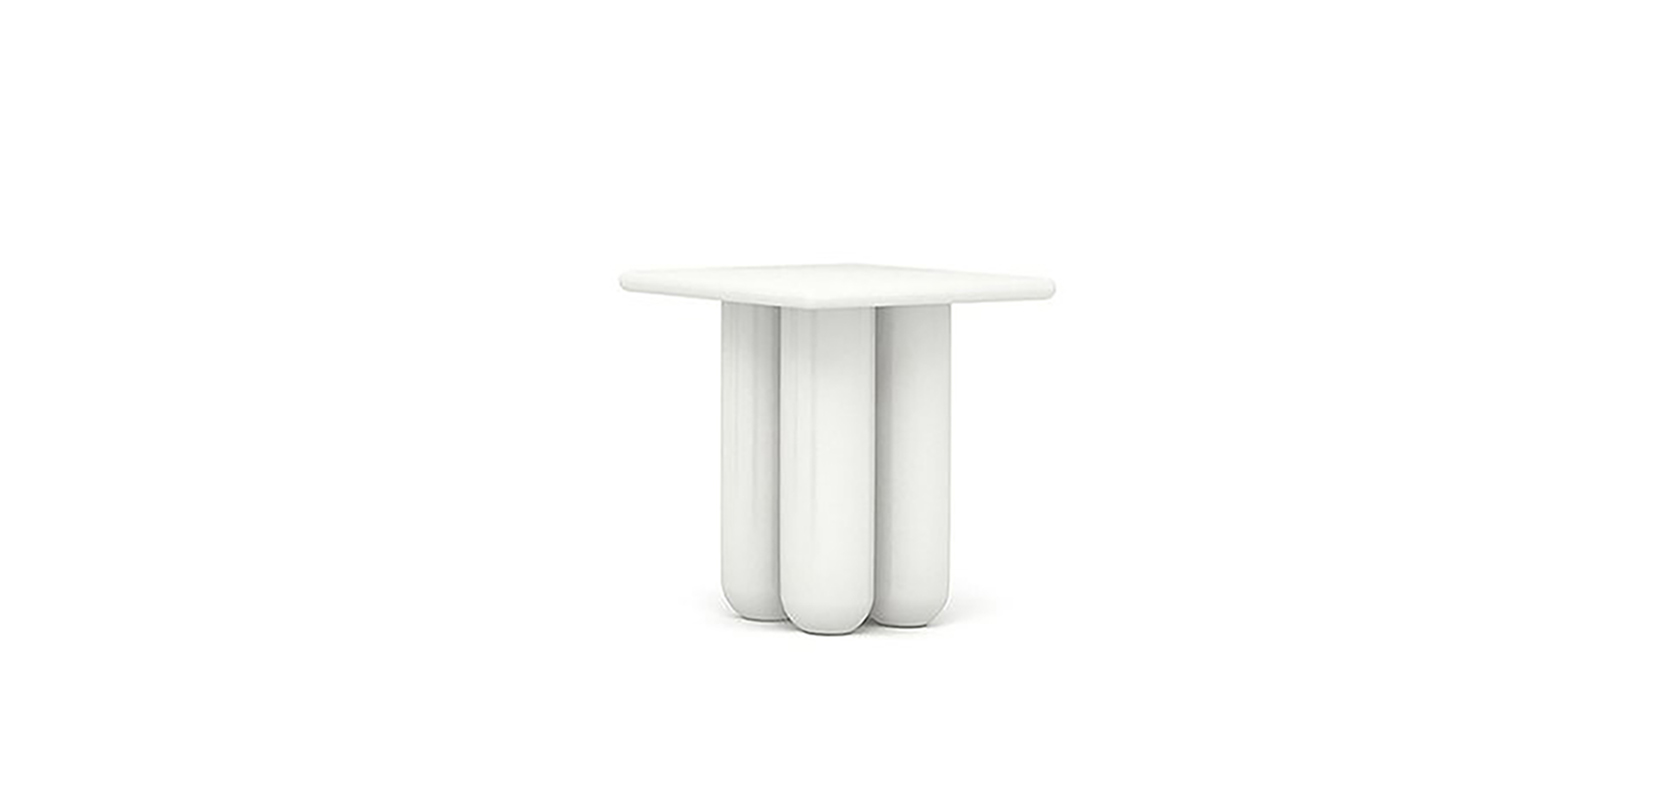 BOLD SIDE TABLE BRAND:  HC28  WEB:   www.hc28.com  The whole shape of Bold Side Table looks rounded and tidy. The legs of Bold Side Table are made of solid wood with neat bright baking finish paint. The top of it can change a variety of materials to mix and match.